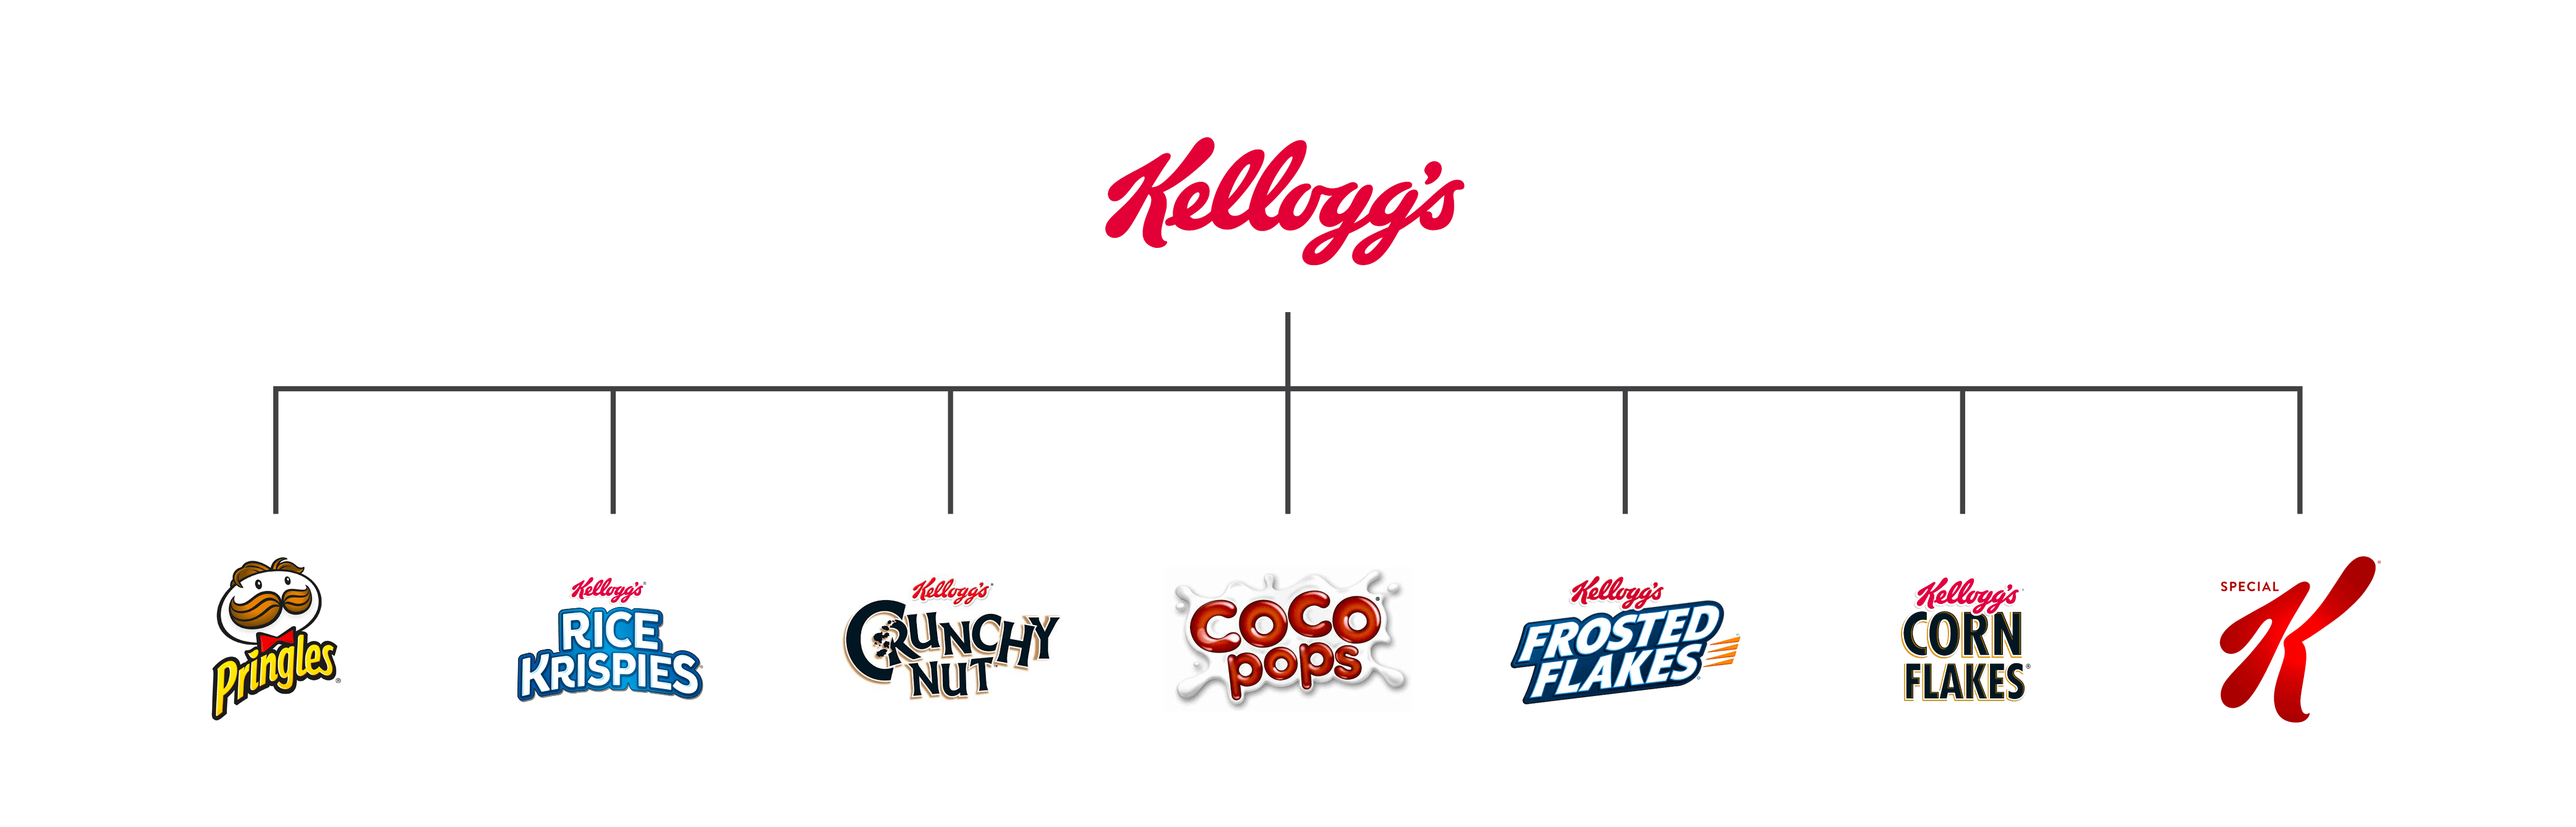 A picture showing brands under the Kellog's family